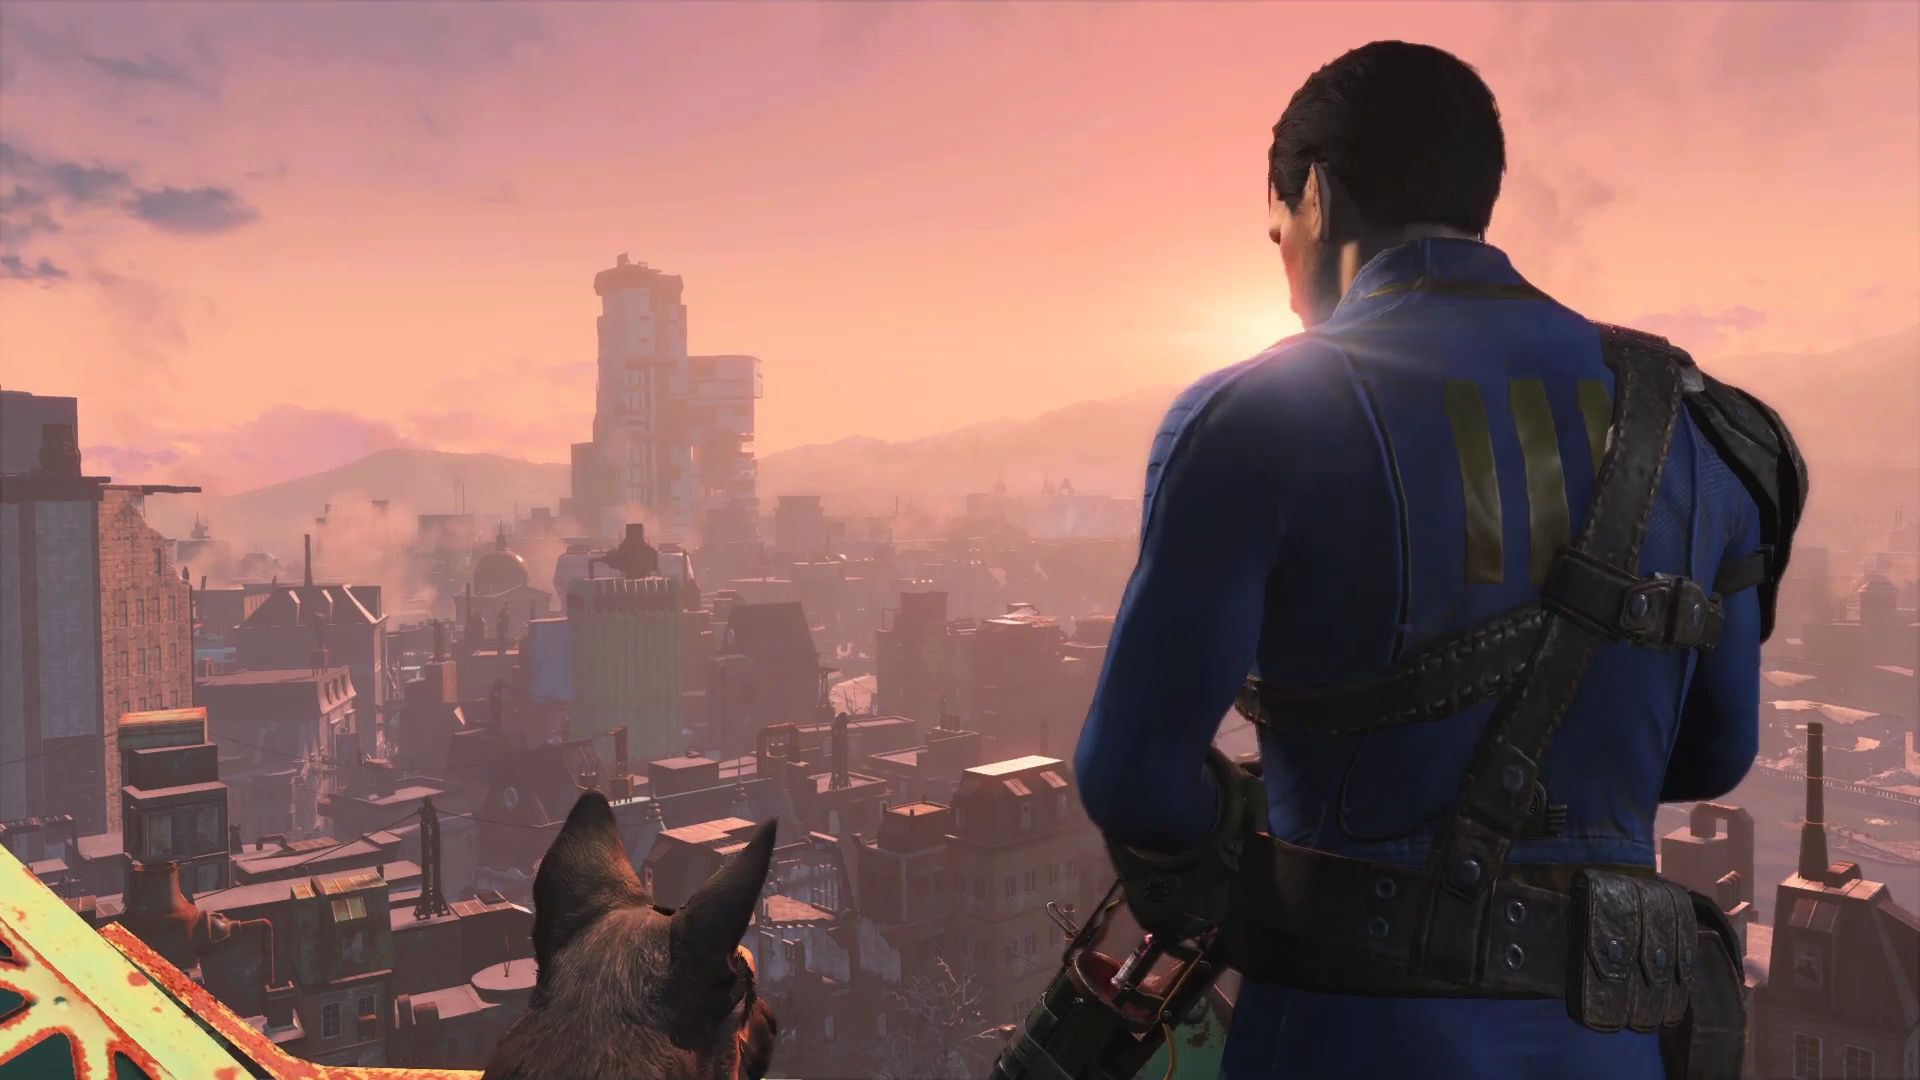 Guide: Fallout 4 PS4 Character Builds That Will Keep You Alive and ...: www.pushsquare.com/news/2015/11/guide_fallout_4_ps4_character...